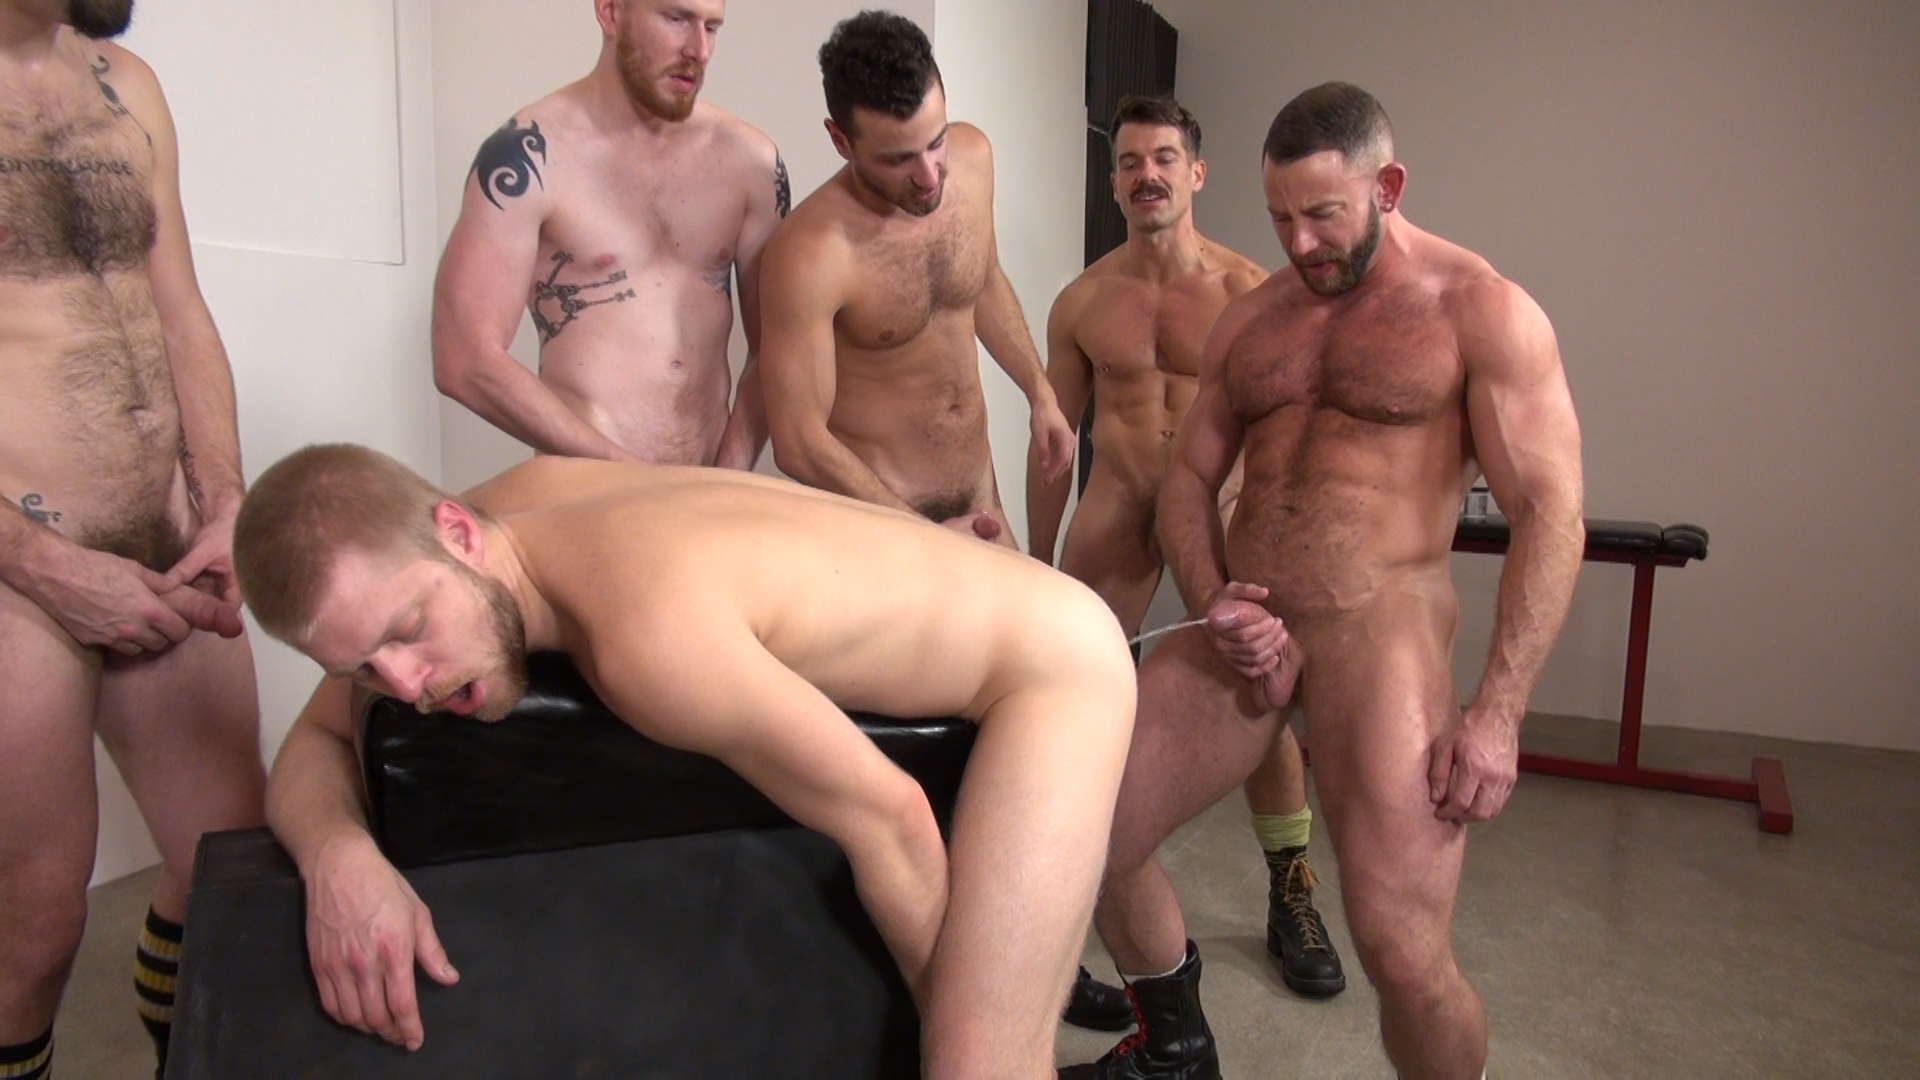 With Hairy men orgy